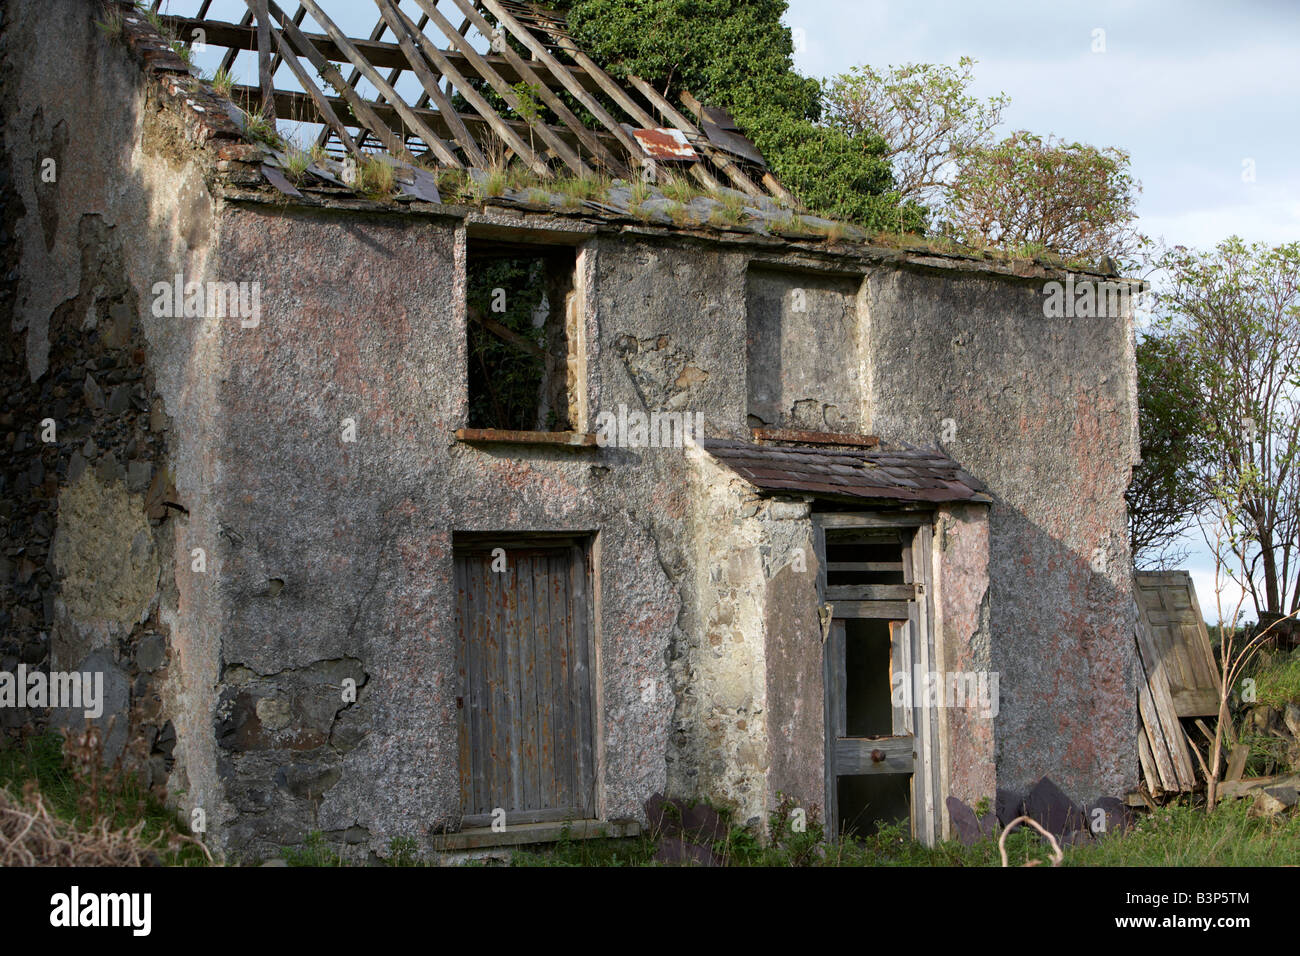 Abandoned Ruined Old Irish Farmhouse County Down Northern